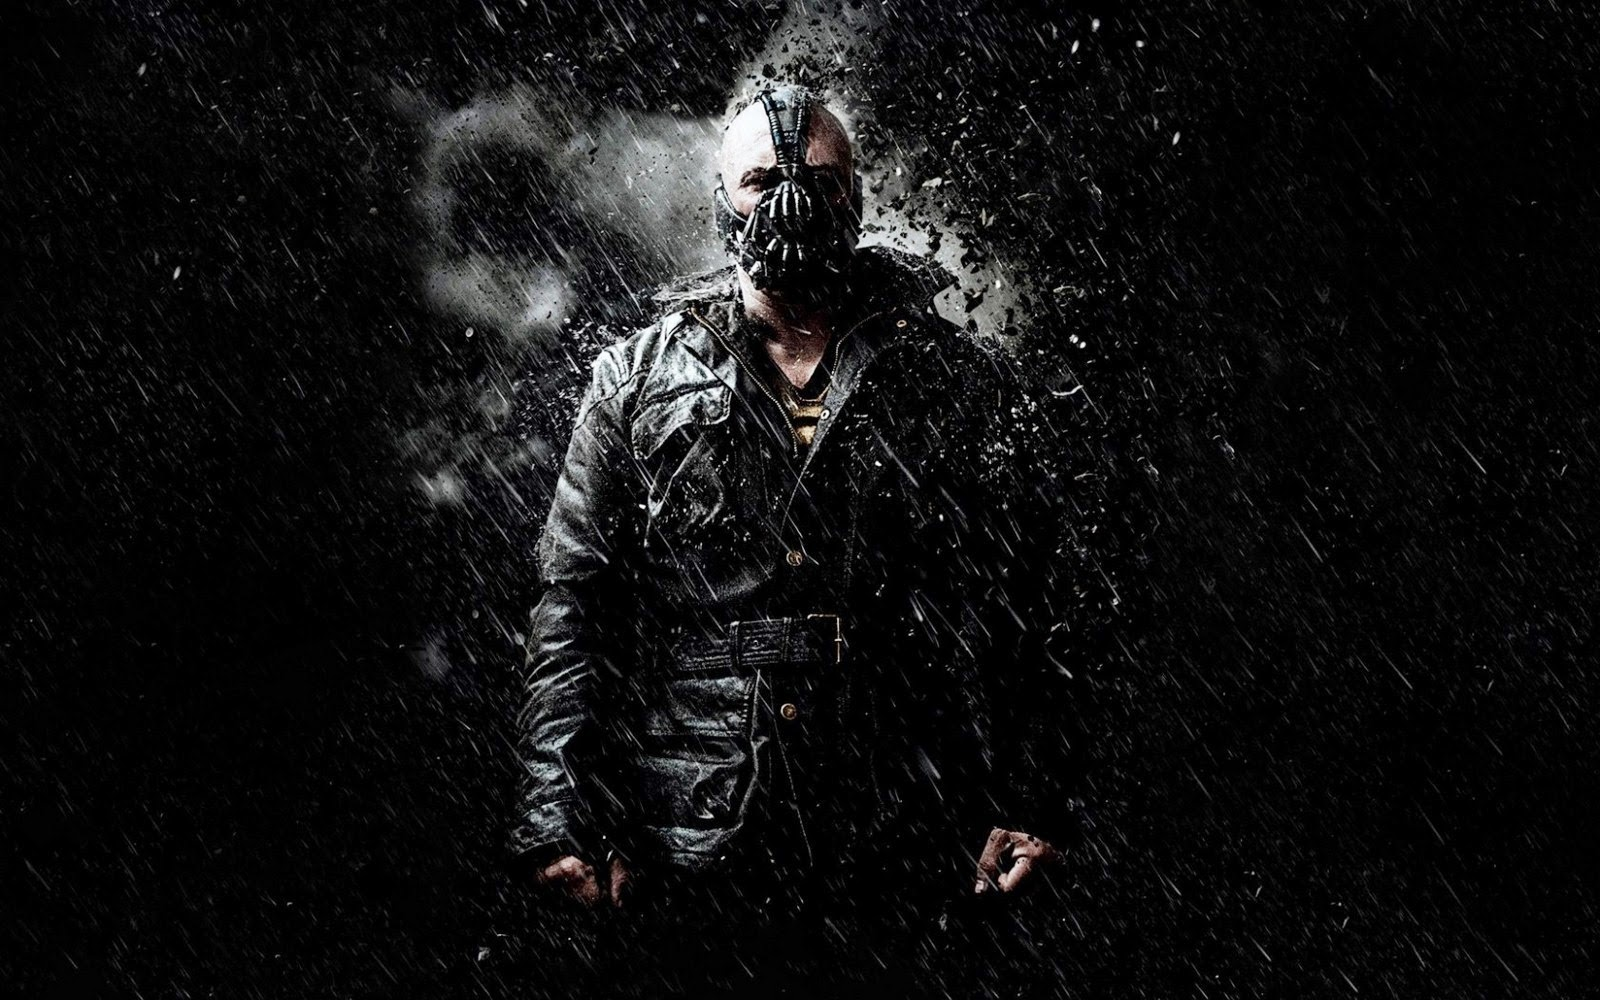 bane the dark knight rises legend superhero comics hd desktop